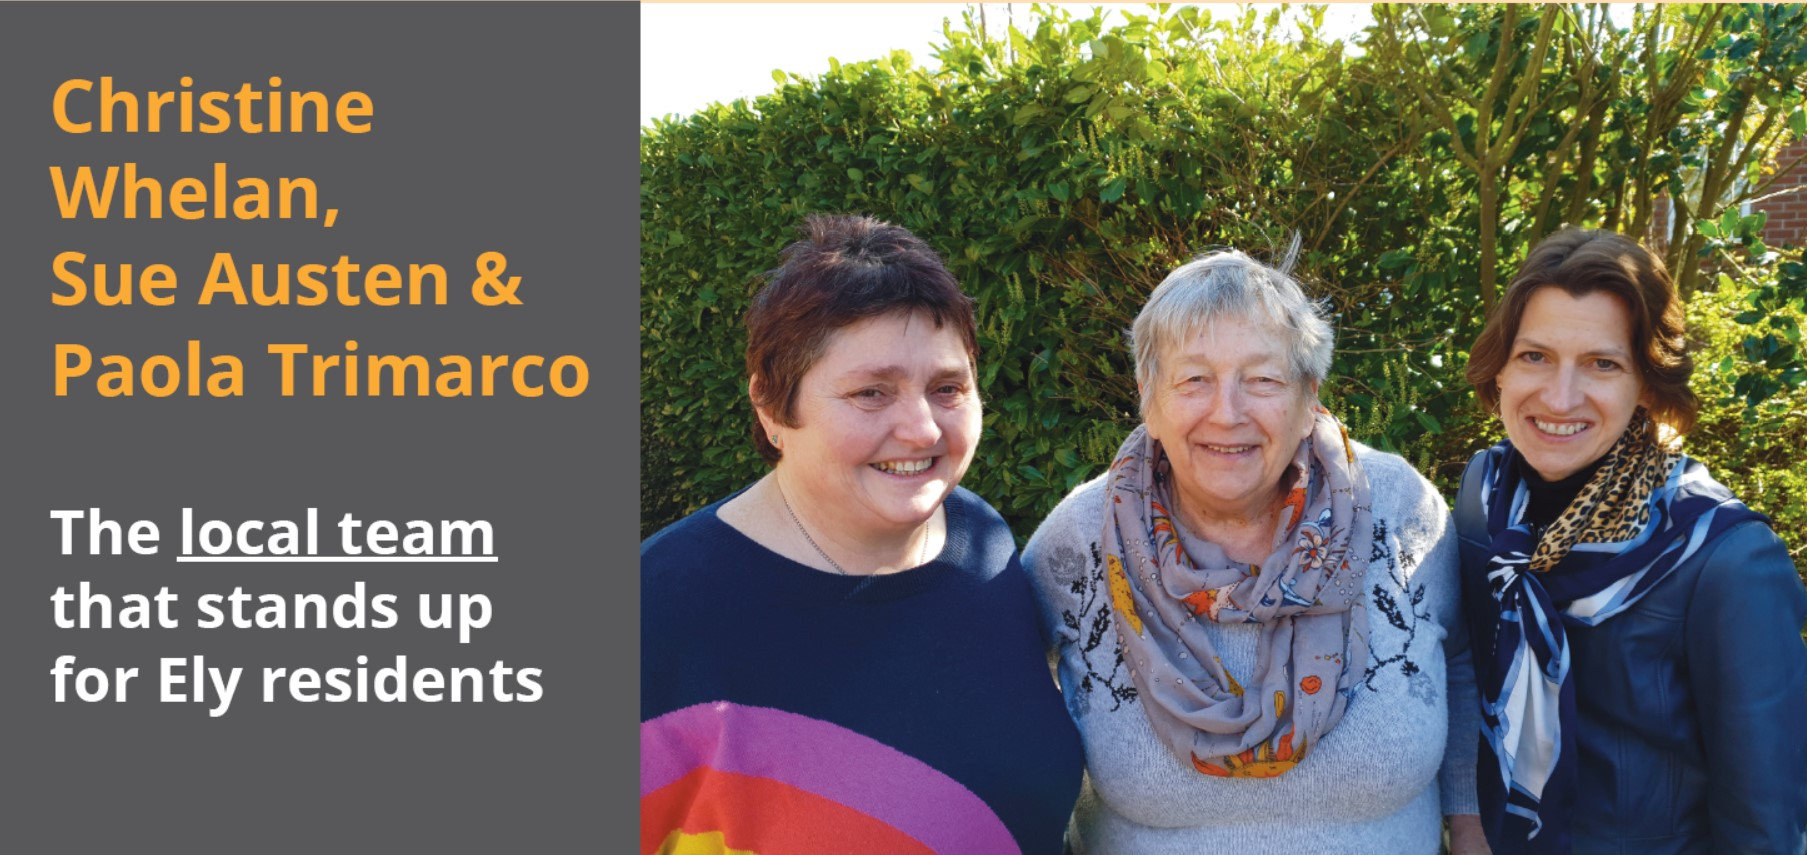 Christine Whelan, Paola Trimarco and Sue Austin - your Liberal Democrat candidates for Ely West